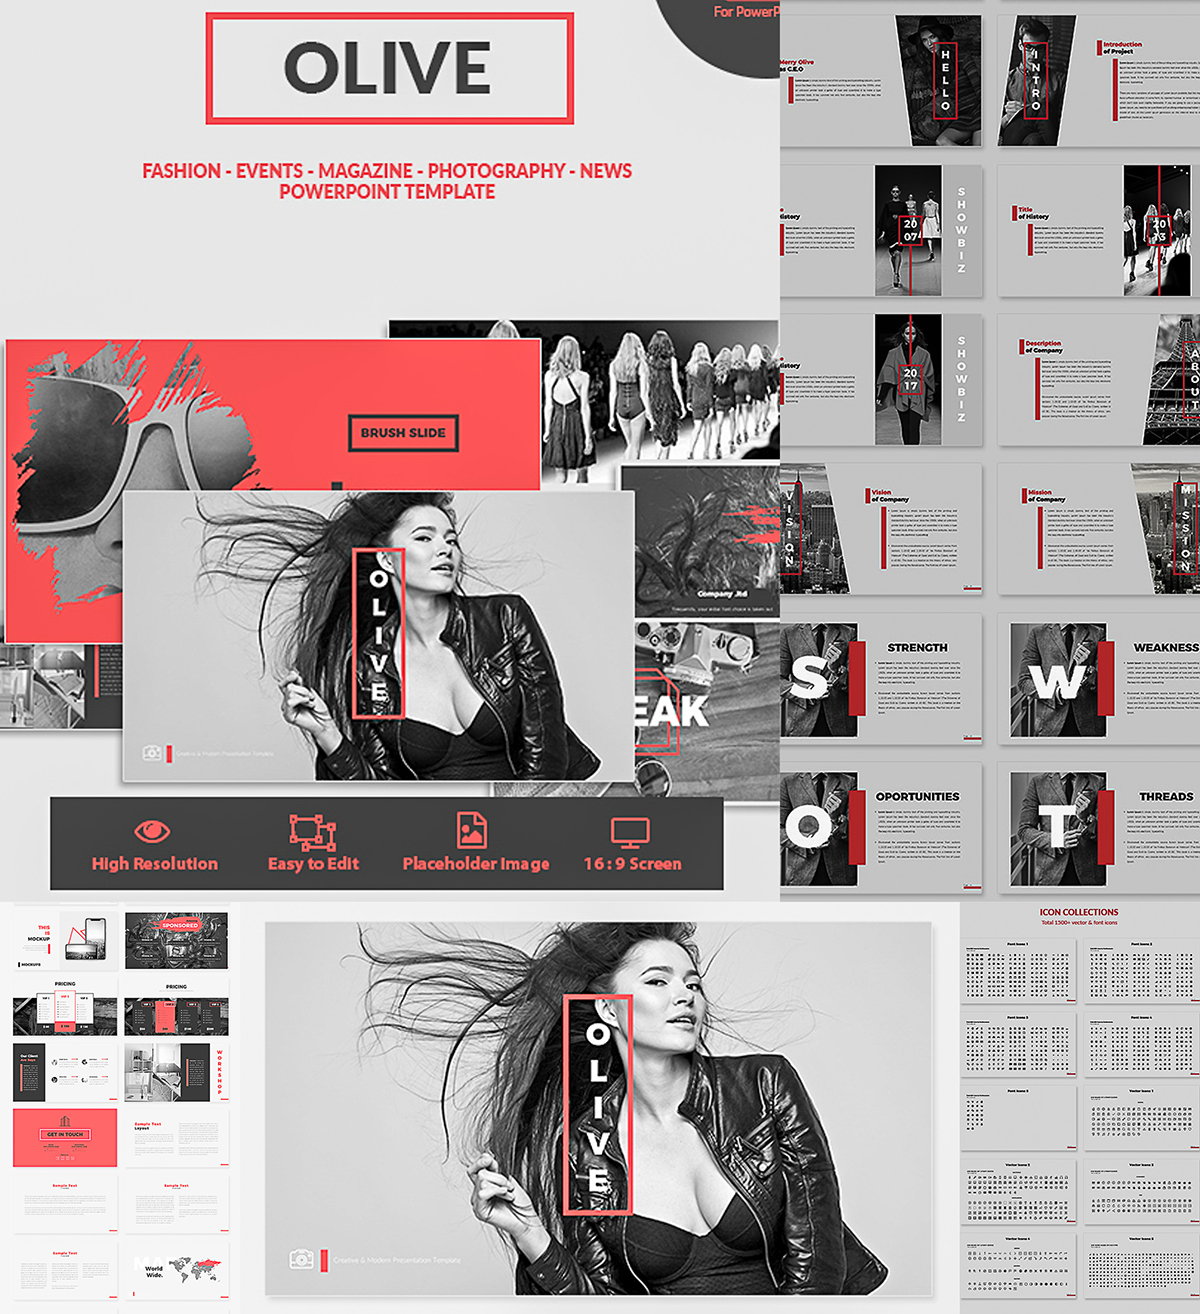 olive powerpoint template | free download, Powerpoint templates